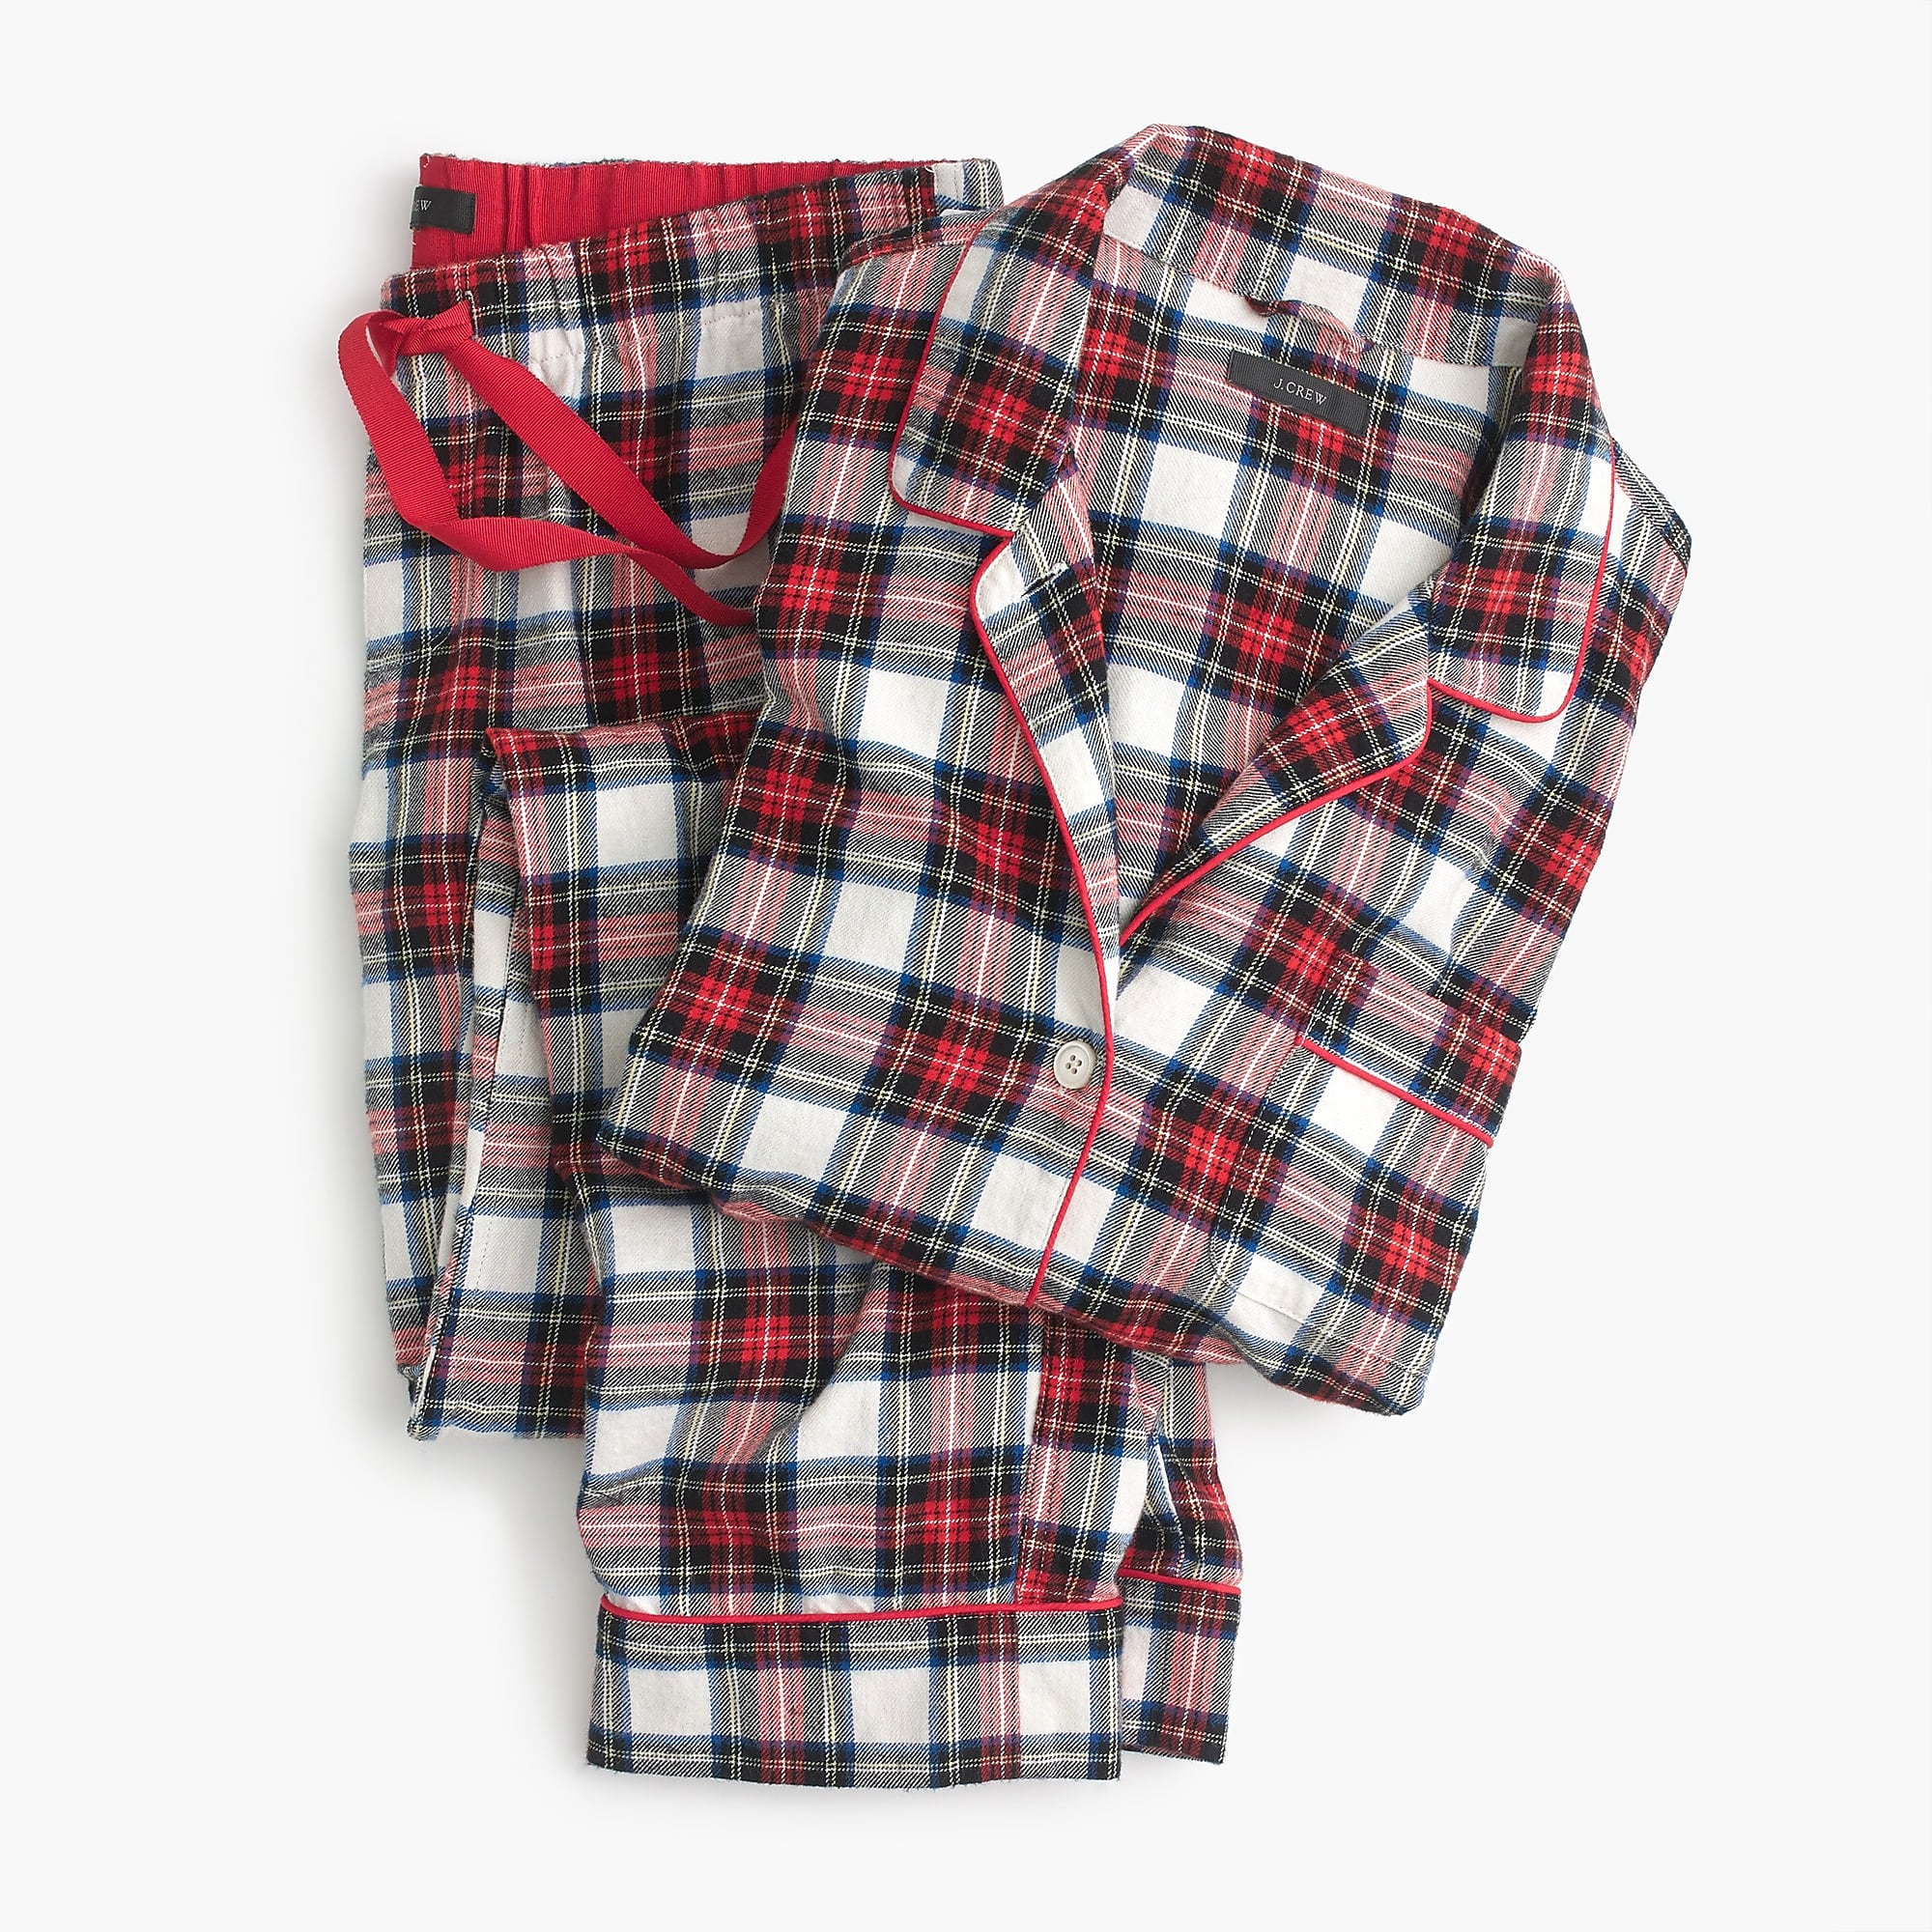 125645c071 Holiday Pajamas for the Entire Family - Katie Considers